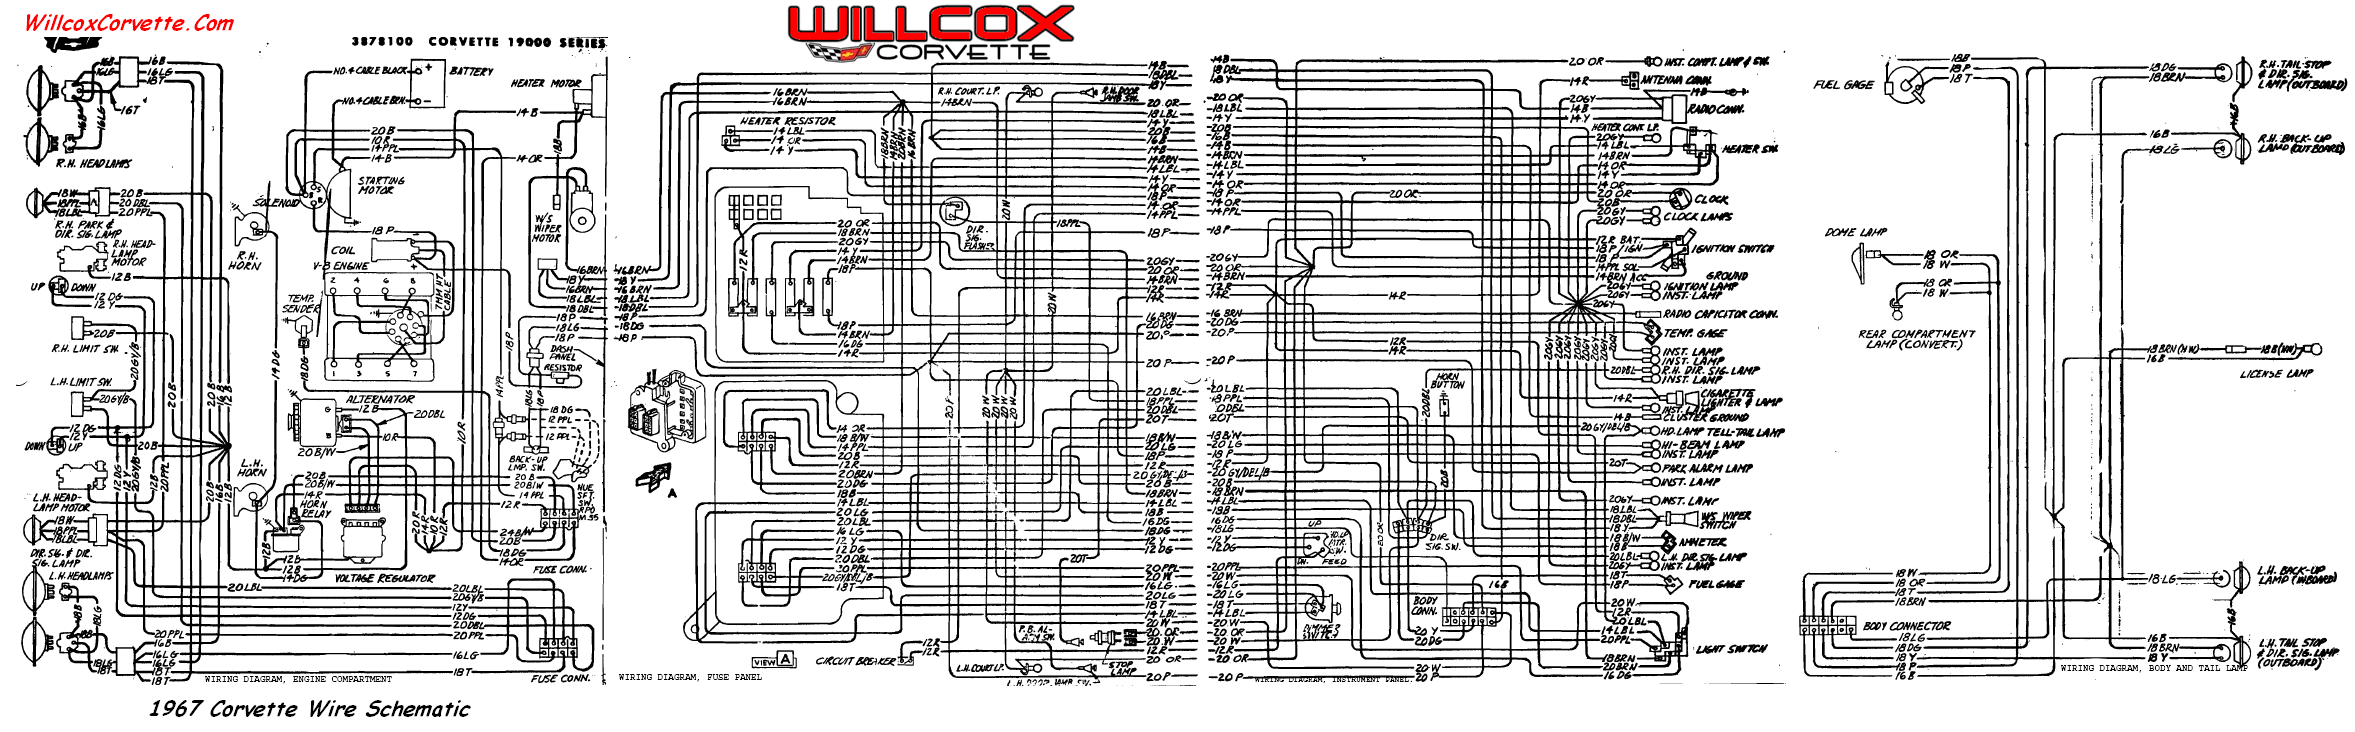 1959 Chevy Starter Wiring Diagram Trusted Diagrams 72 1954 Carburetor 1968 Corvette Nova